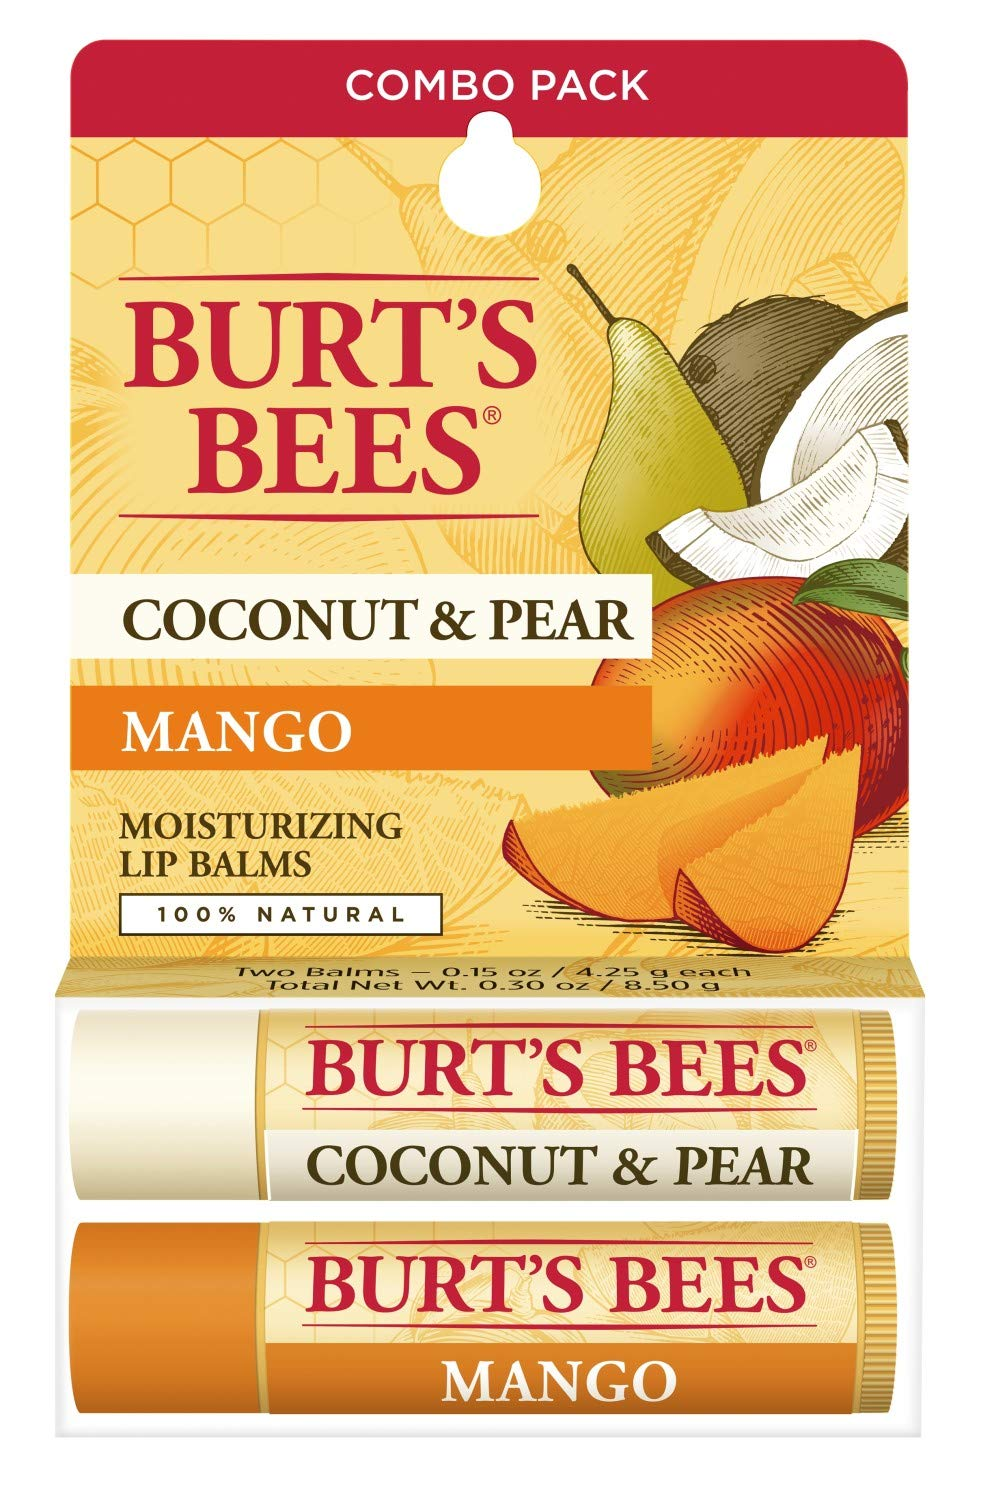 Burt's Bees 100% Natural Moisturizing Lip Balm, Coconut & Pear and Mango with Beeswax & Fruit Extracts - 2 Tubes, 2 Fl OZ